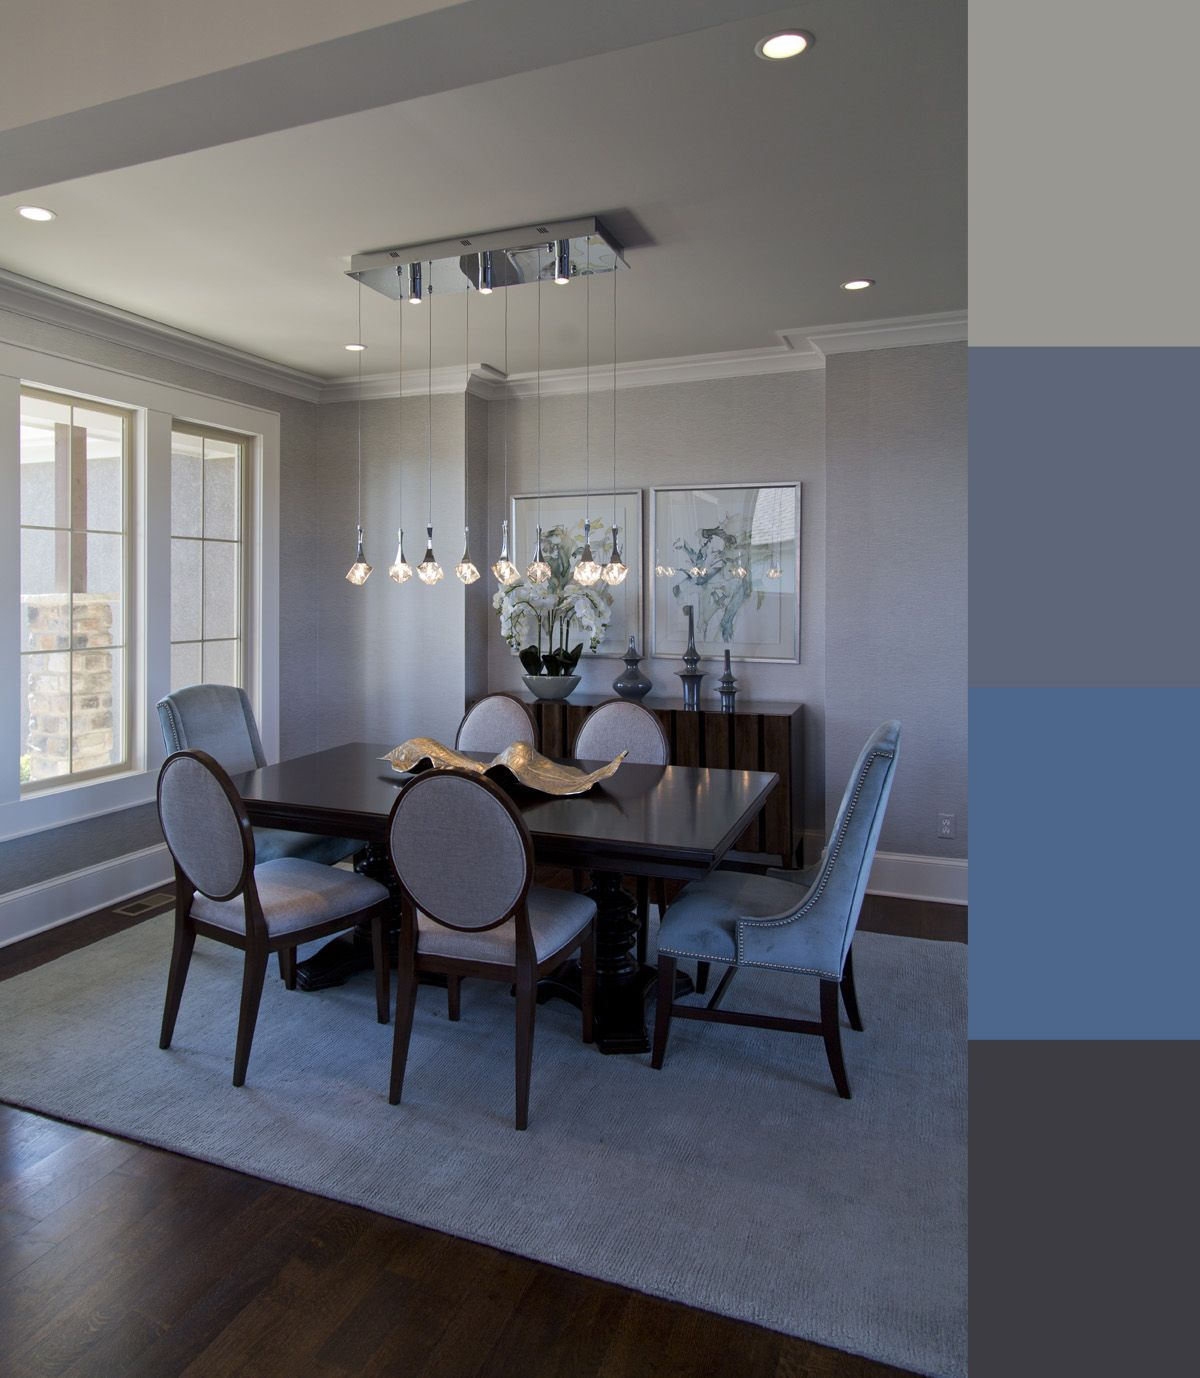 Calming Colors That Will Perfect Your Home: The Perfect Color Scheme For A Serene Home Design